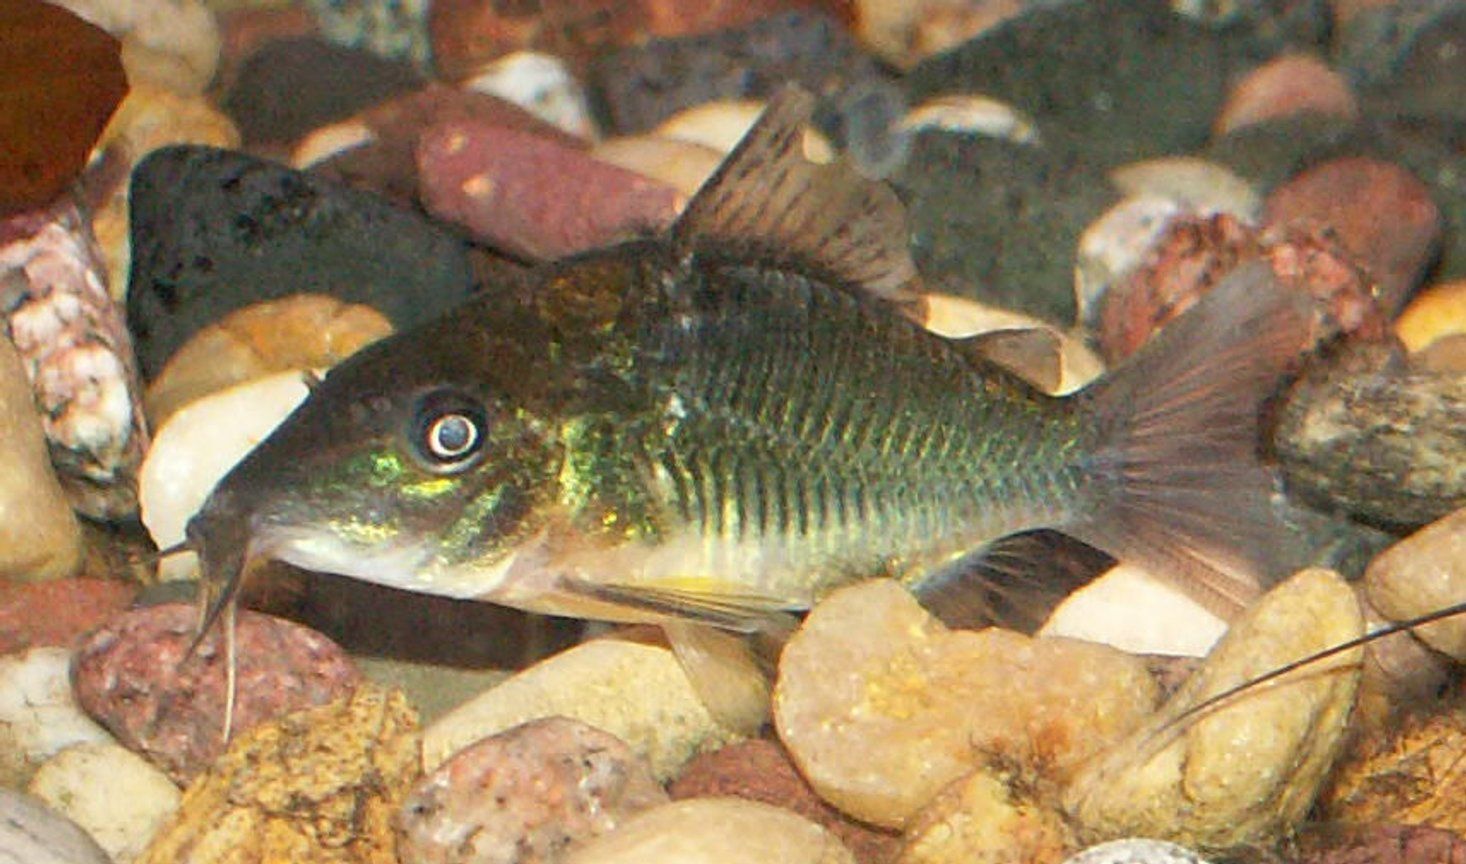 freshwater fish - brochis splendens - emerald green cory cat stocking in 110 gallons tank - Emerald Cory